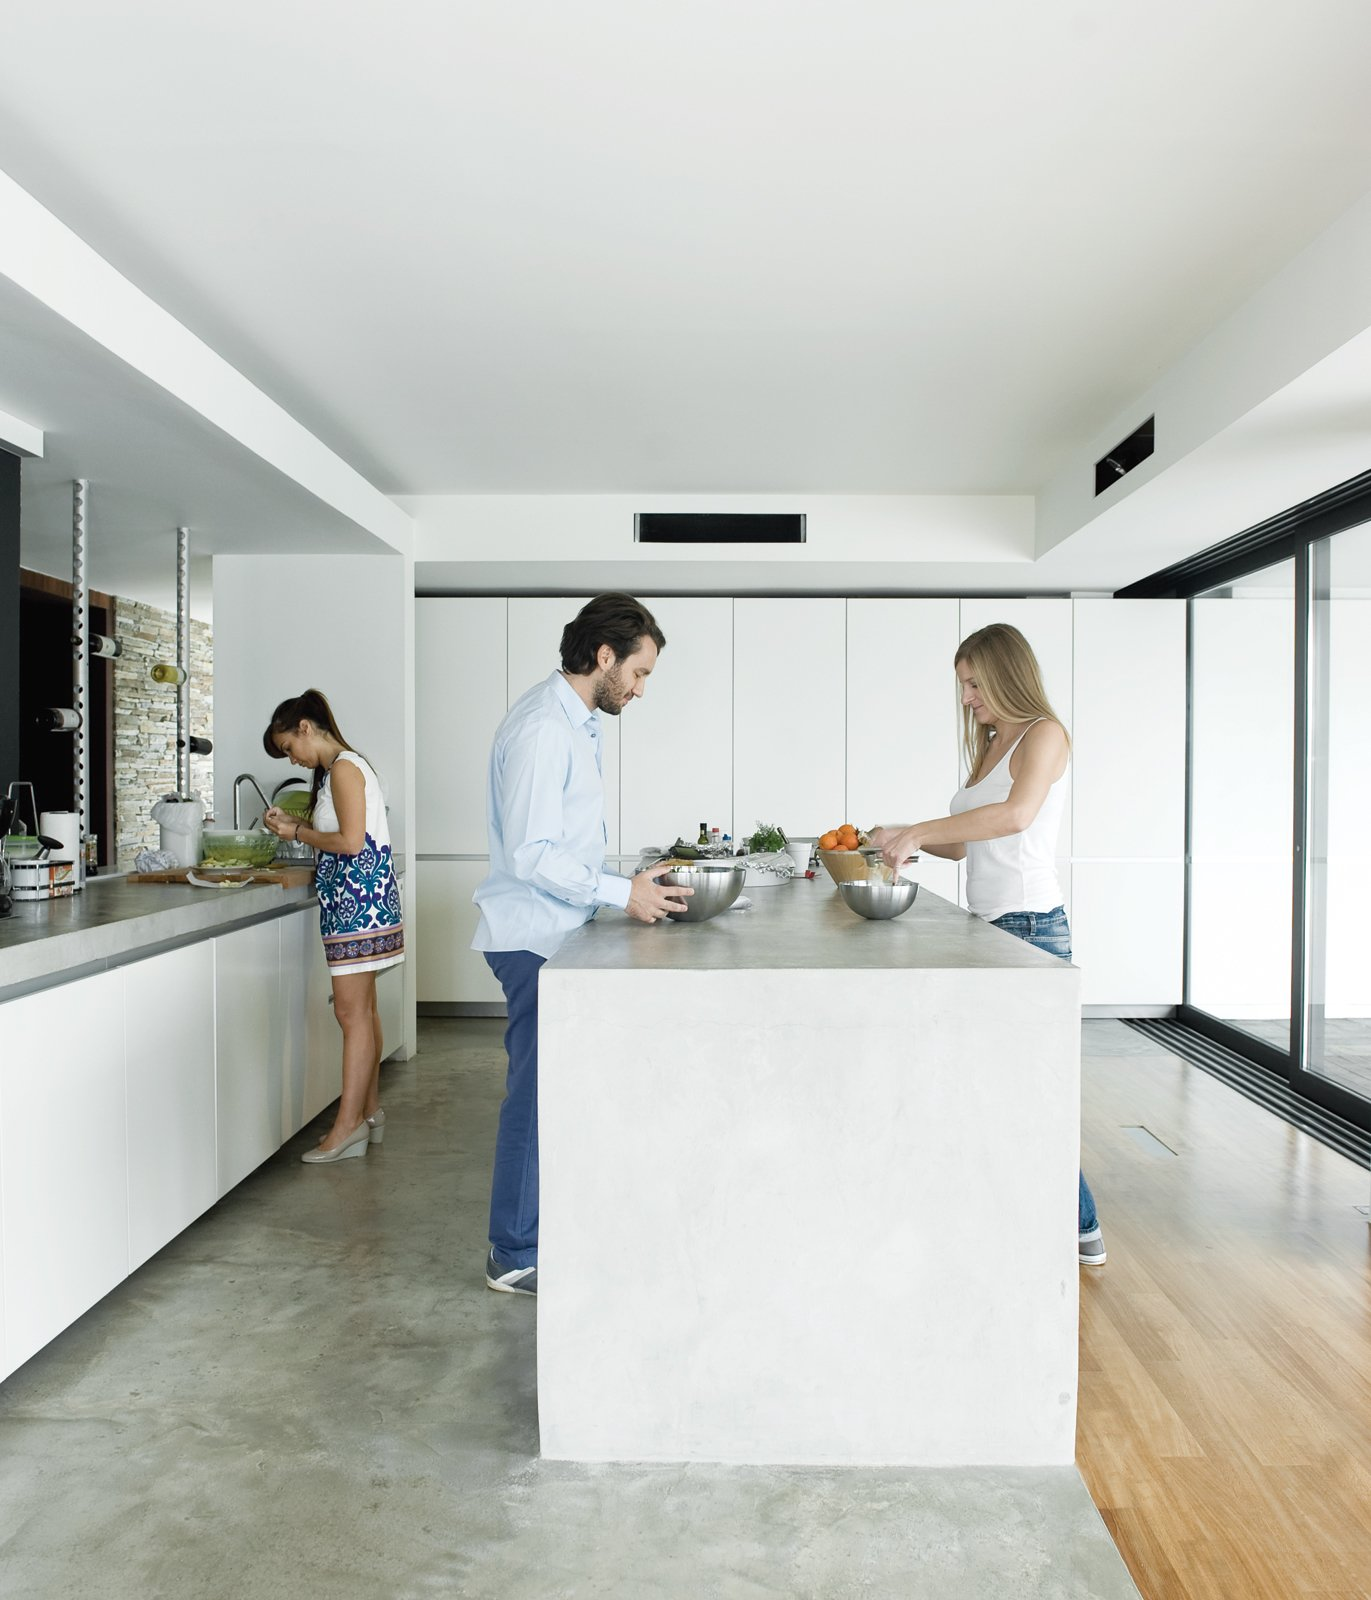 Alexia, Achilleas, and friend Fotini prepare lunch in the kitchen, outfitted with cabinets by Zeyko.